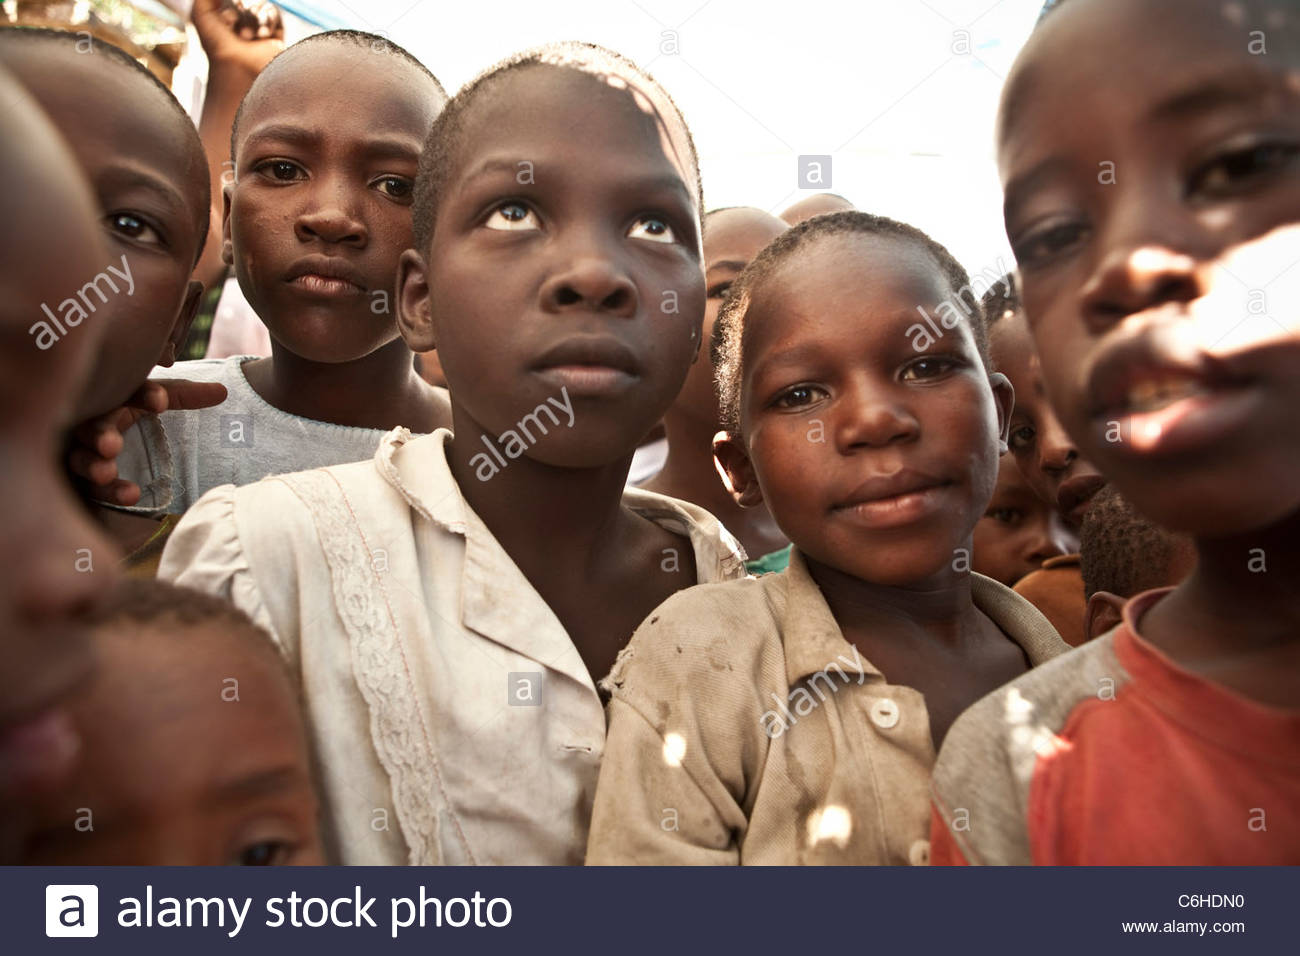 Children waiting outside a food distribution center - Stock Image